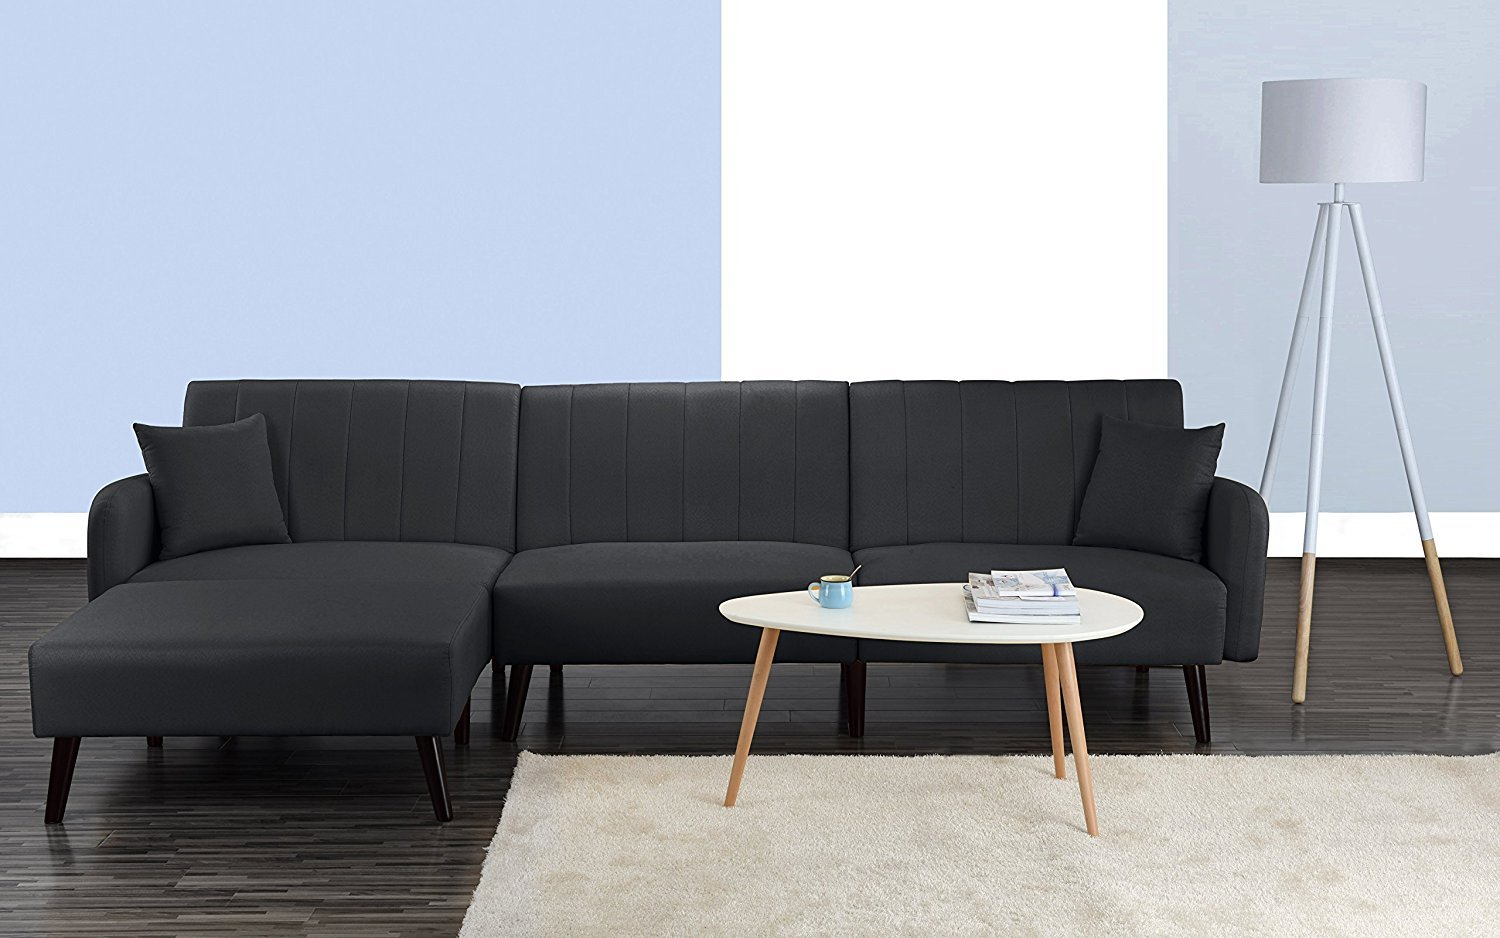 Astonishing Details About Mid Century Modern Style Linen Fabric Sleeper Futon Sofa Living Room Dark Grey Onthecornerstone Fun Painted Chair Ideas Images Onthecornerstoneorg